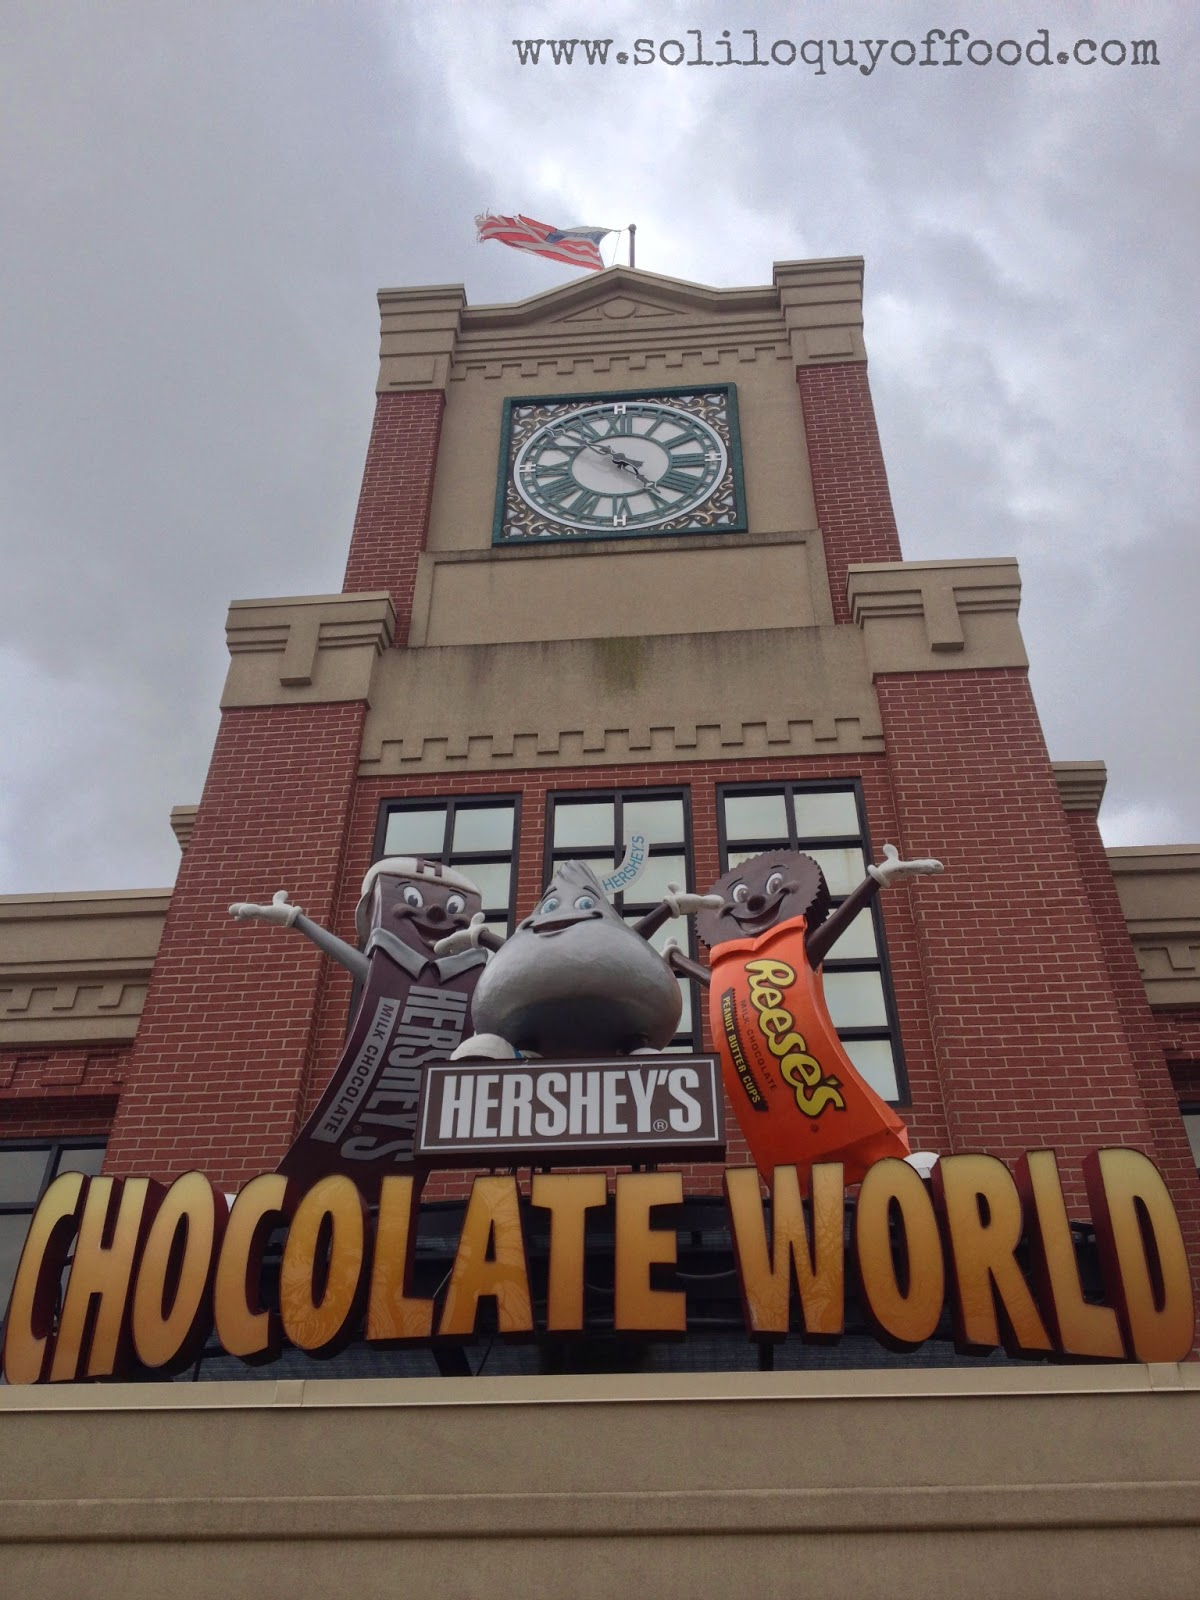 Chocolate World, Hershey, PA USA - www.soliloquyoffood.com